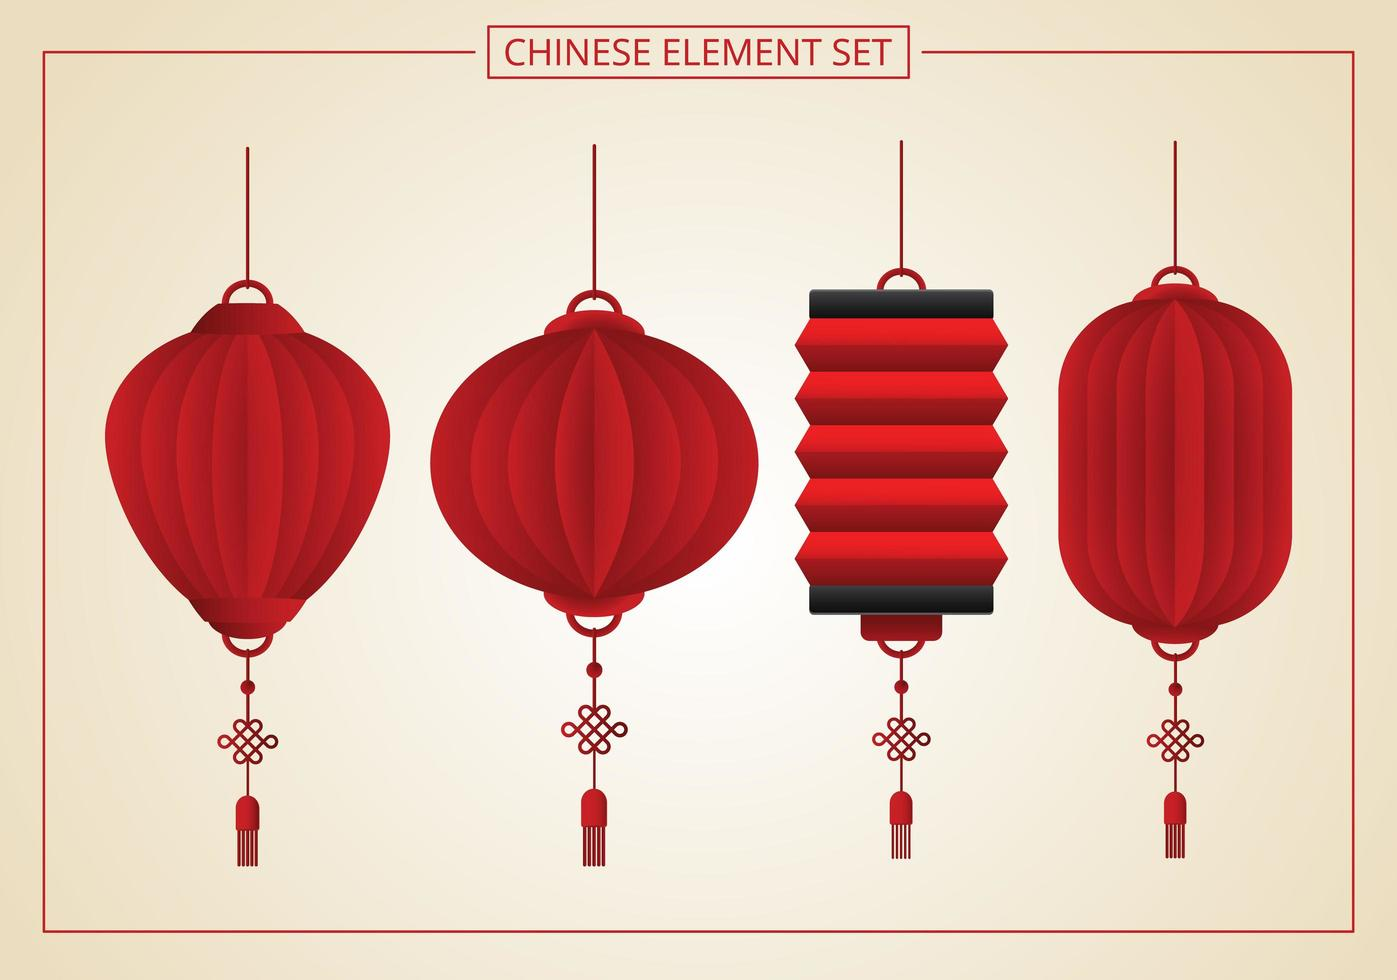 lot de 4 lanternes chinoises vecteur